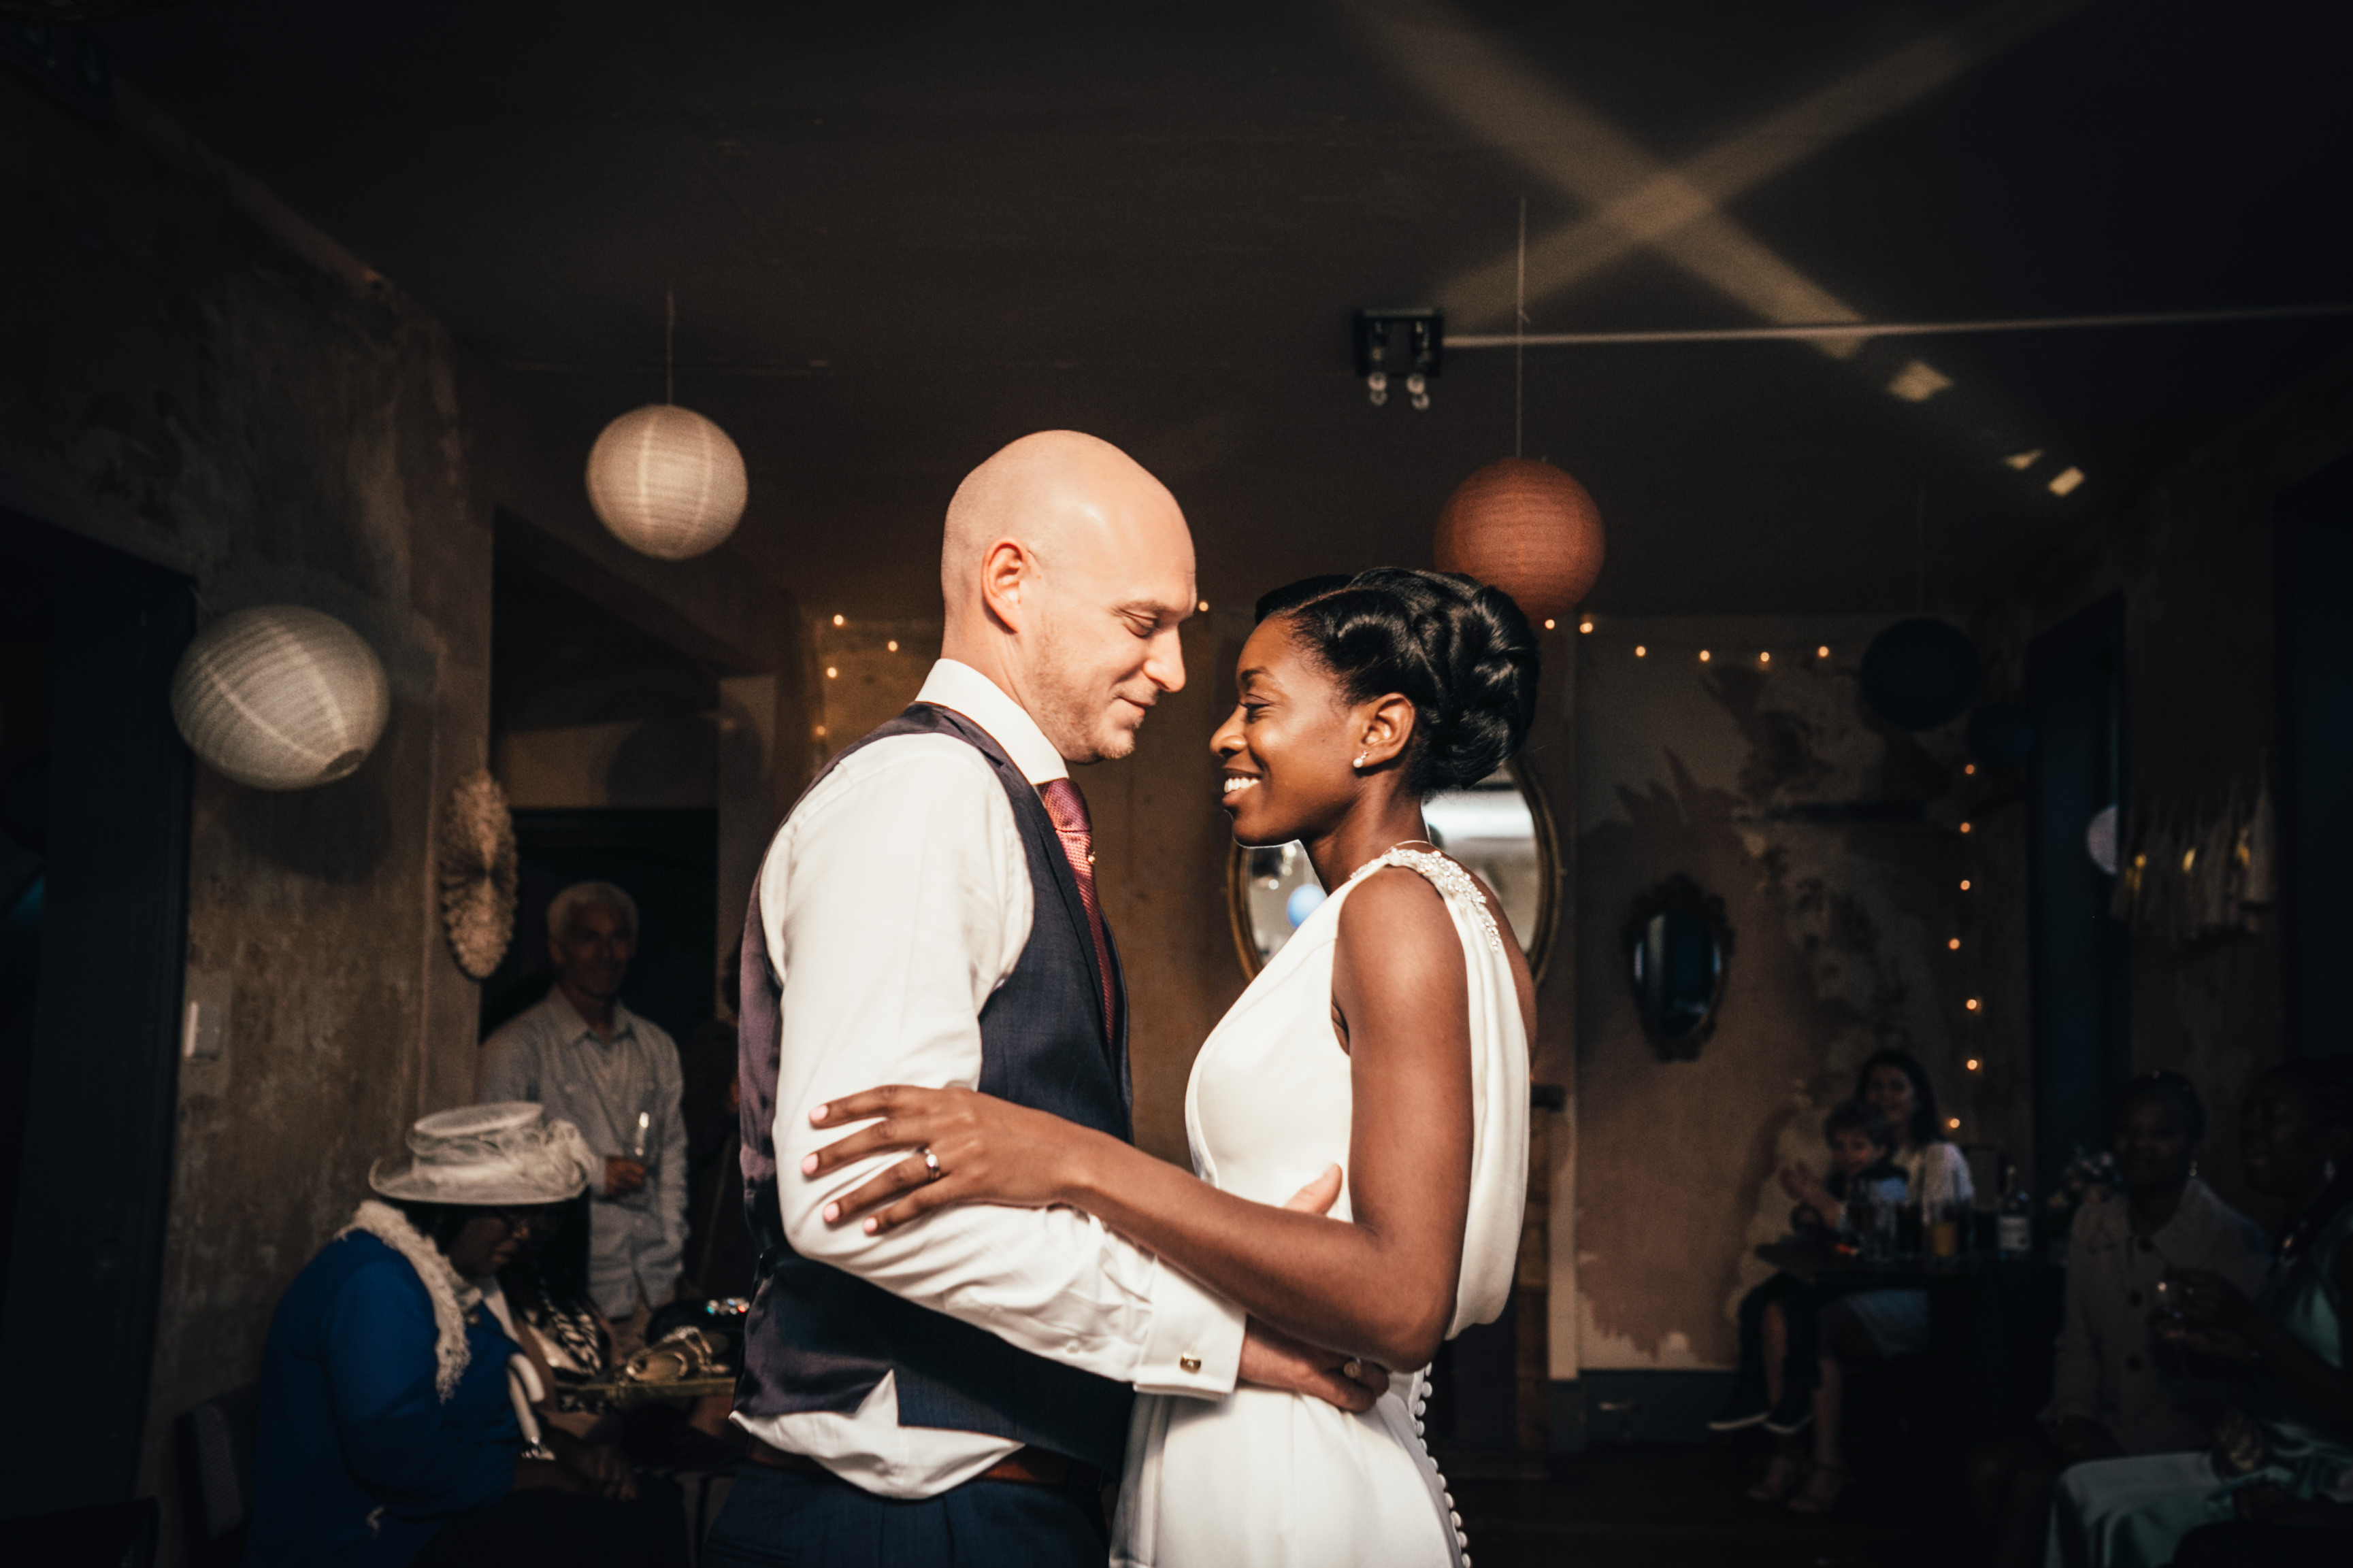 north london brighton hipster pub wedding